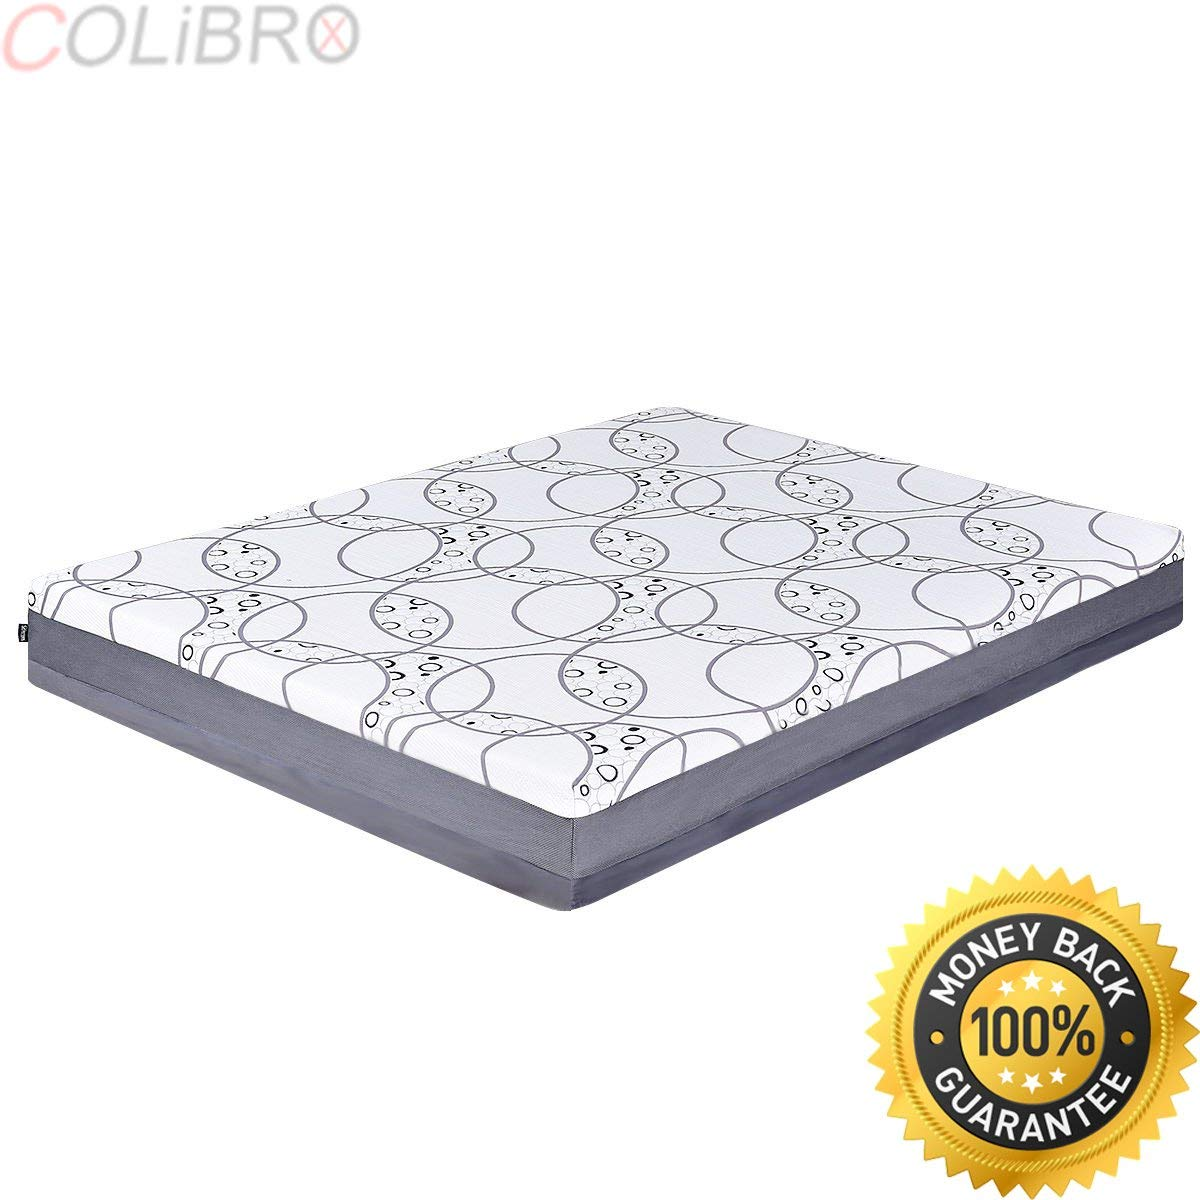 This is a long enough period to allow you to make a decision on whether it provides the best sleeping. cheap foam mattress walmart find foam